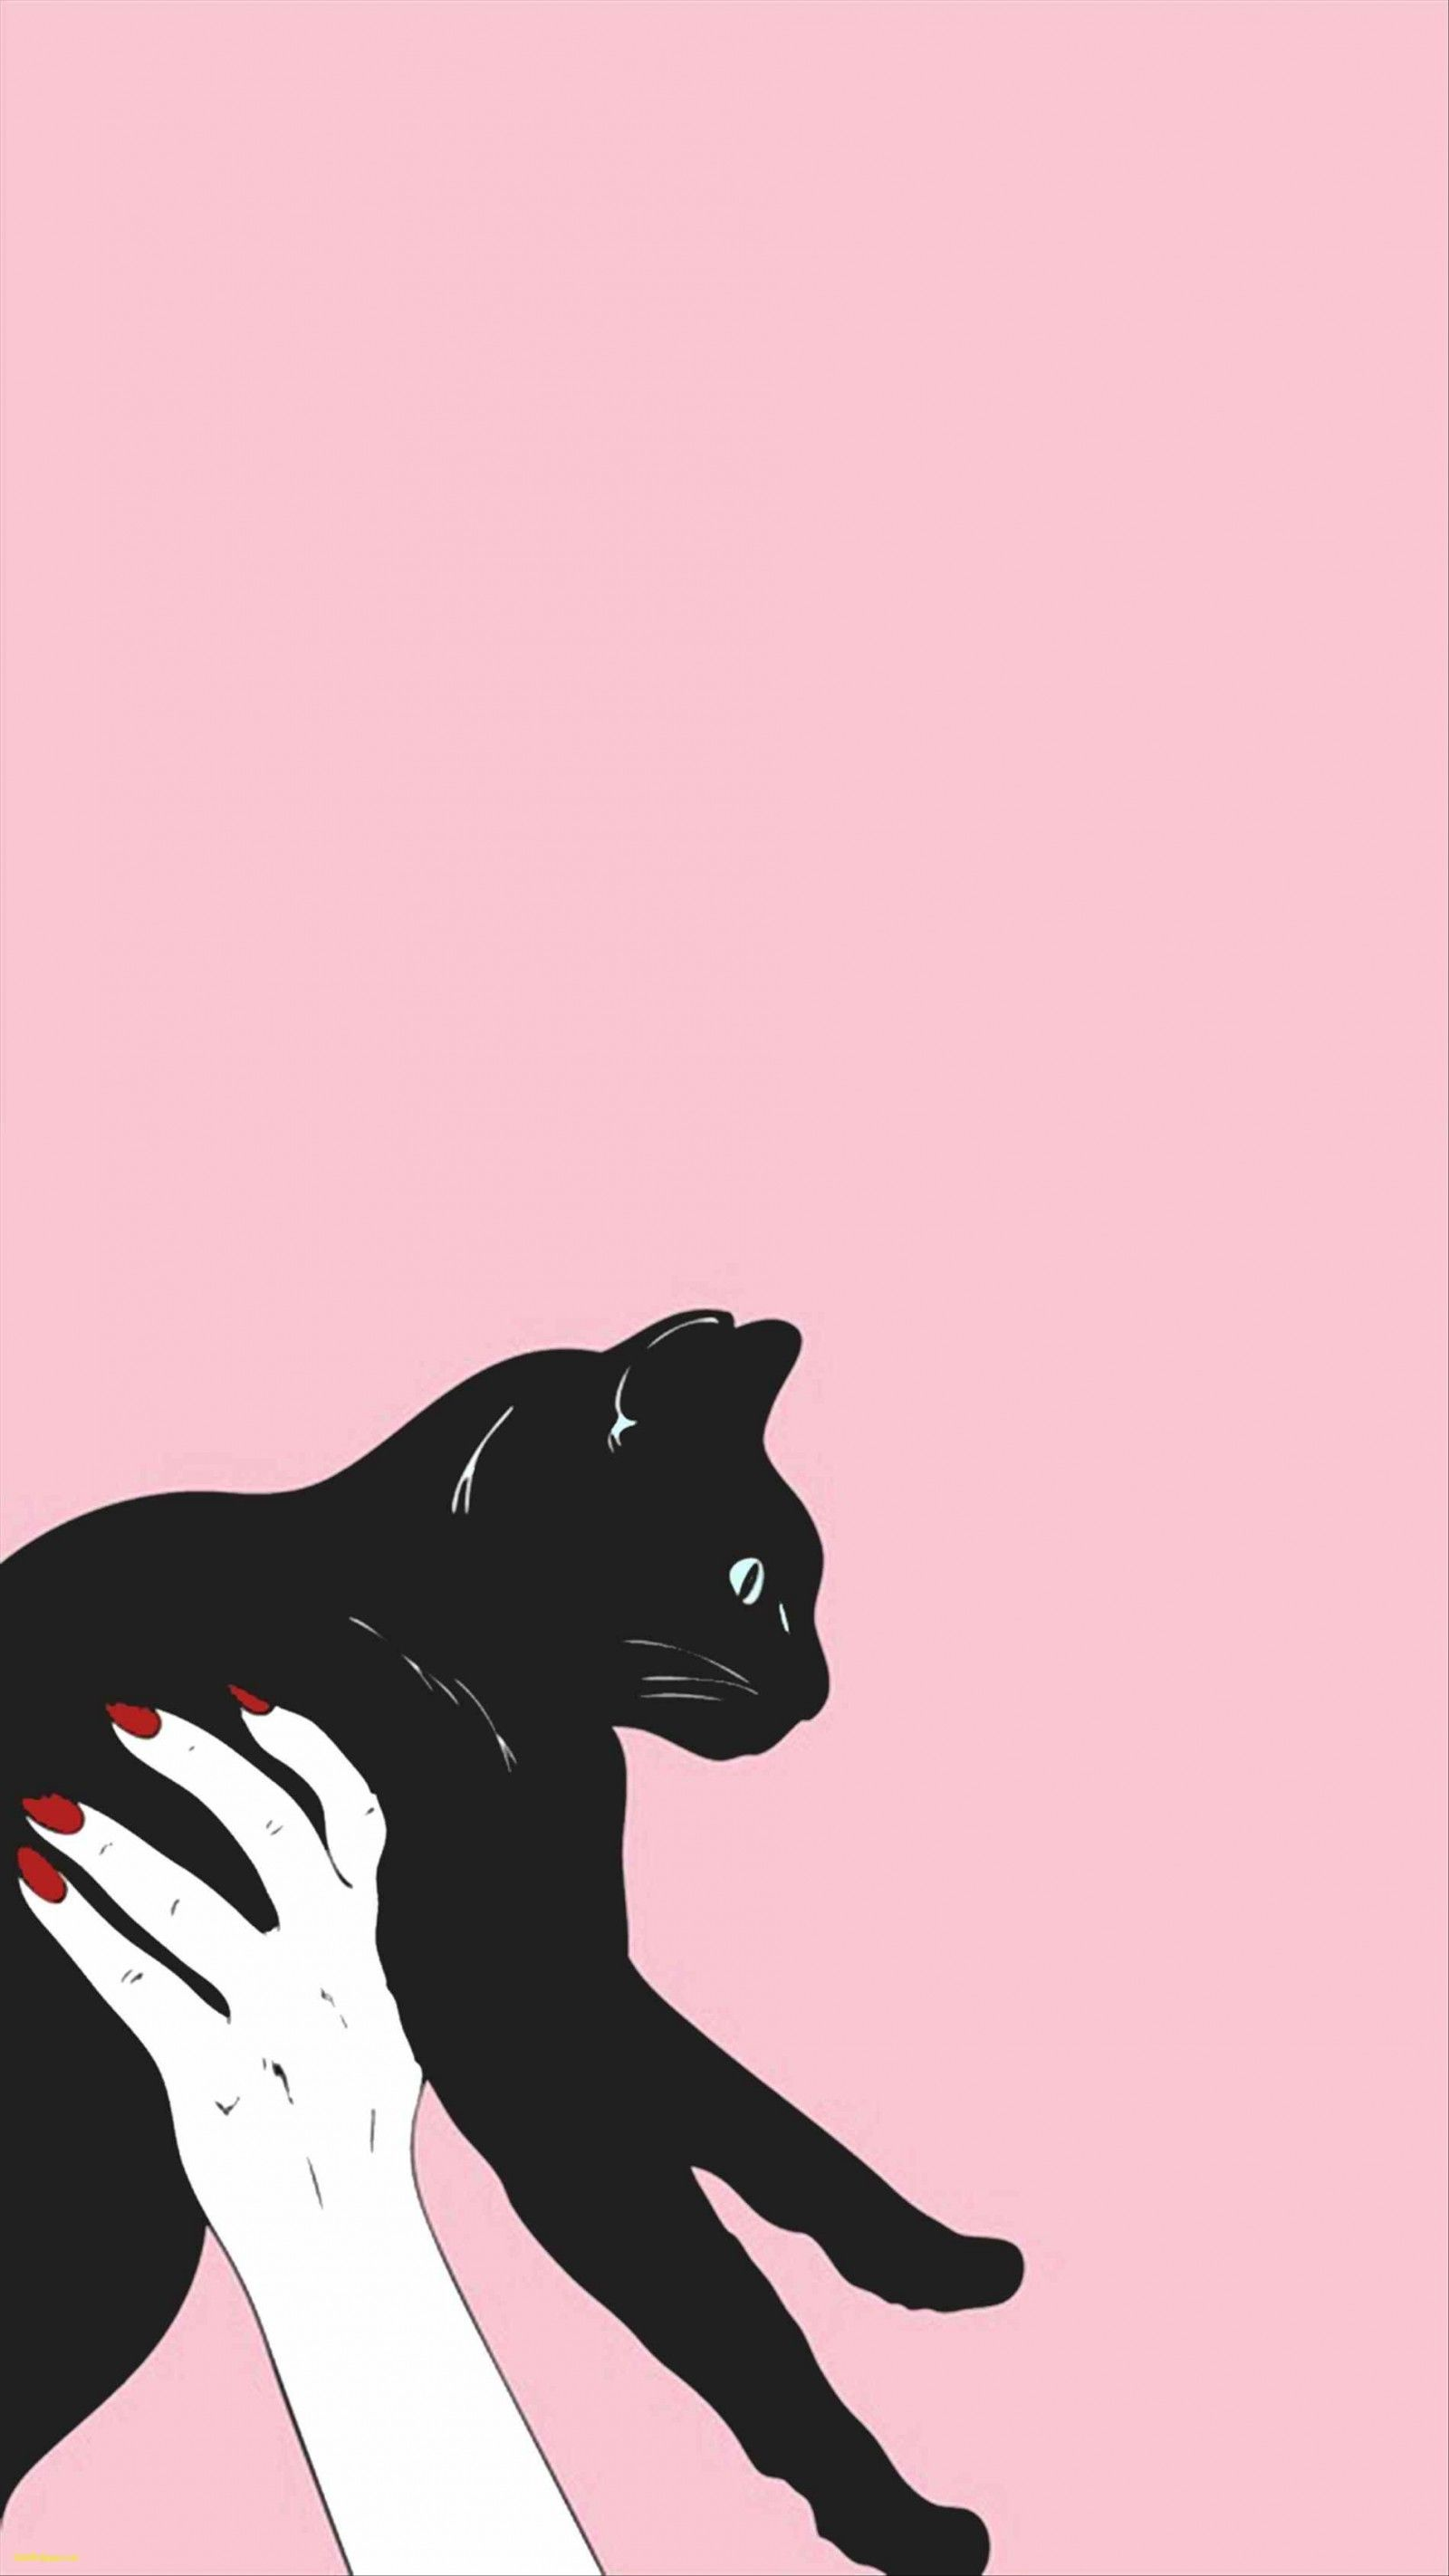 Cute Wallpaper Tumblr Awesome Iphone S Pinterest More And Cute For Plus Hd Animal Cute Cat Iphone Wallpaper Cat Cat Wallpaper Tumblr Wallpaper